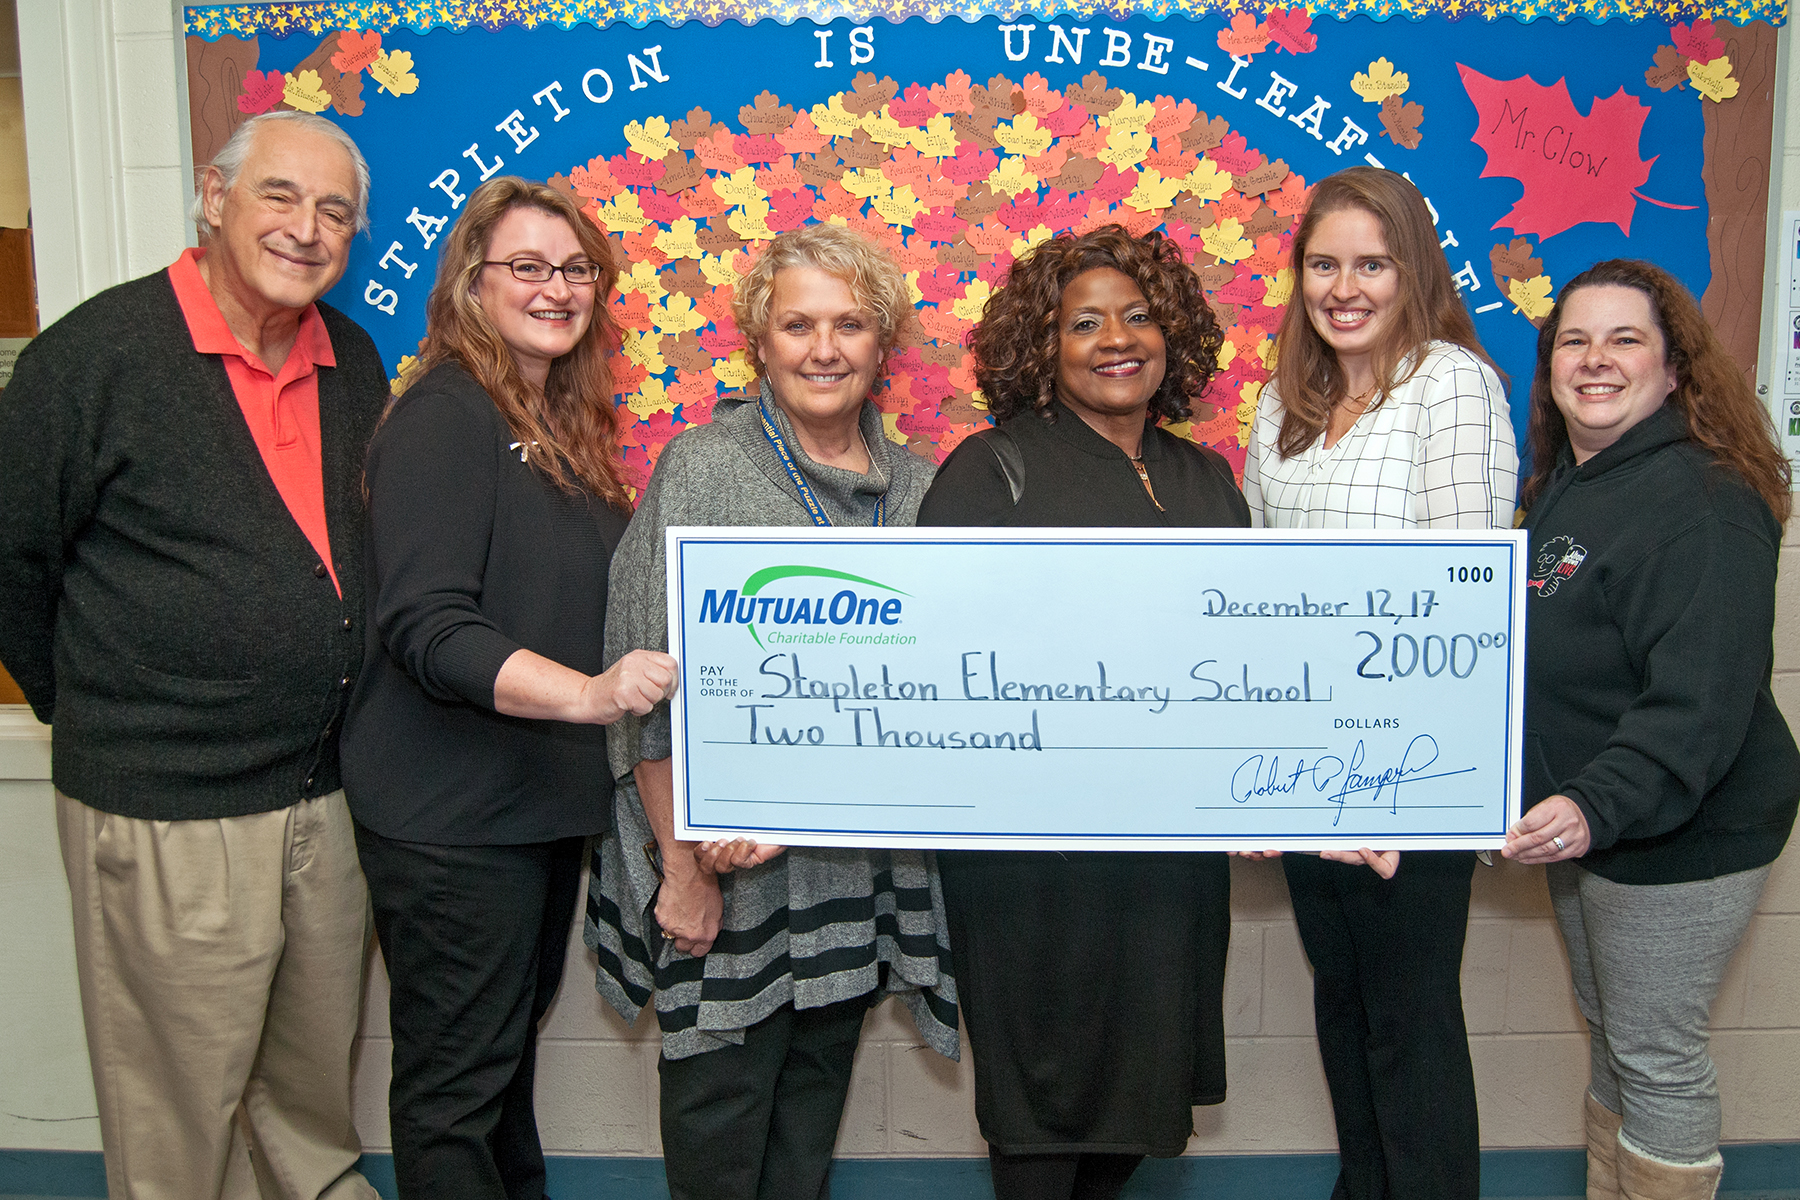 Celebrating MutualOne Charitable Foundation's recent $2,000 grant to the Stapleton Elementary School's STEAM night are (l-r) Volunteers Allan Rosenberg and Michelle Rosenberg; Allison Benabdallah, Stapleton assistant principal; Jean Hoskins, MutualOne Bank's Concord Street, Framingham office manager; Heather Allen, Grade 3 teacher and STEAMathon co-chair; and volunteer Meredith Wolff.